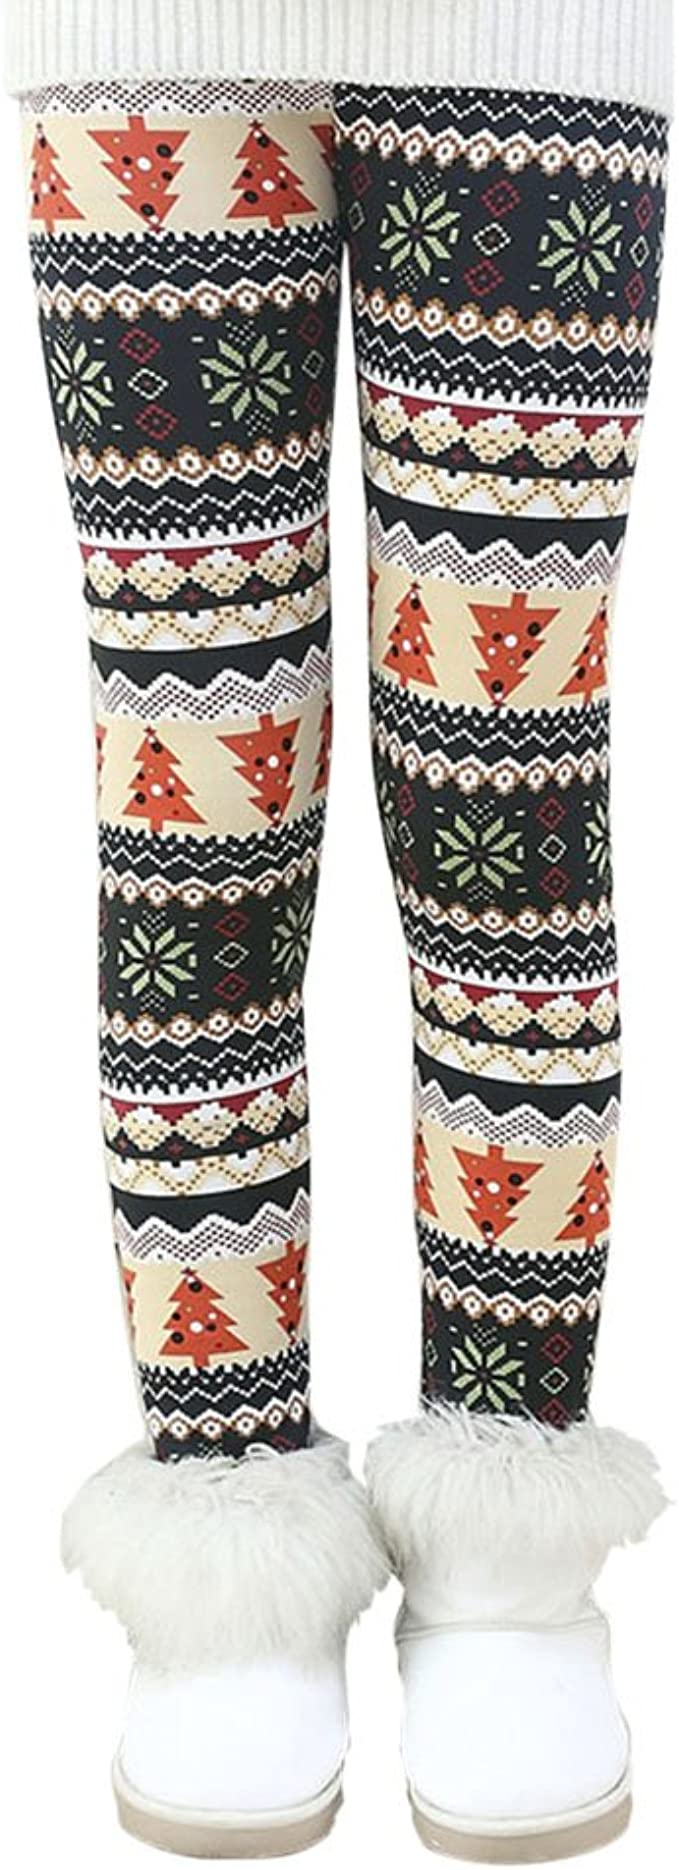 Fleece Lined Girls Leggings Winter Warm Kids Tights Pants Cashmere Plush Cotton Leggings Casual fleece lined Thick Leggings 3-12 Years